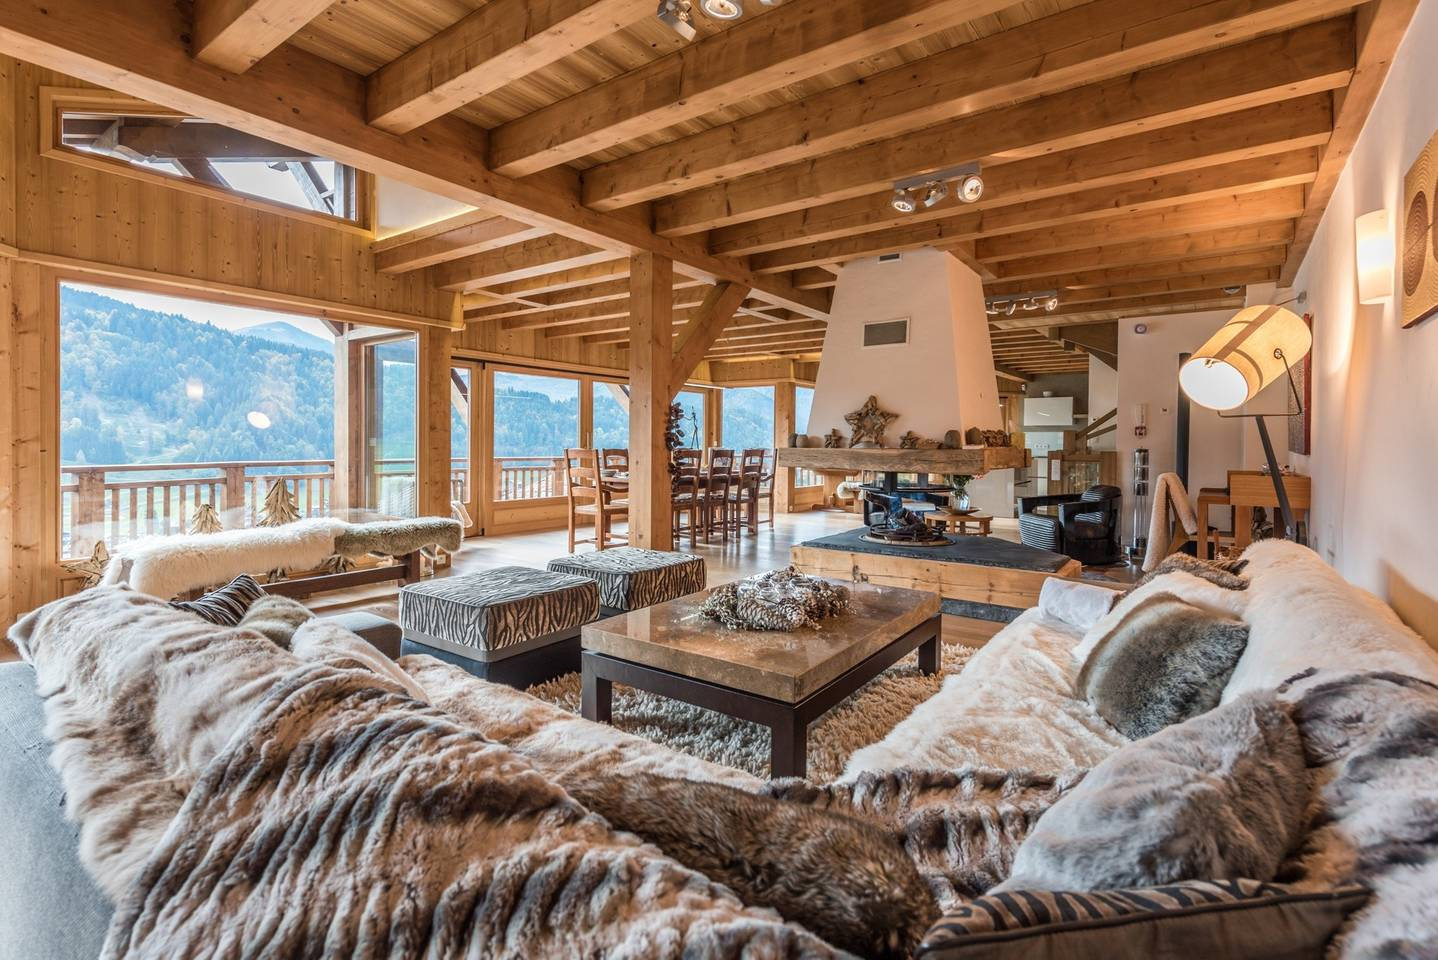 Air Bnb Corse Du Sud Location Morzine Airbnb Location Omaroo Ii Chalet Luxueux Avec